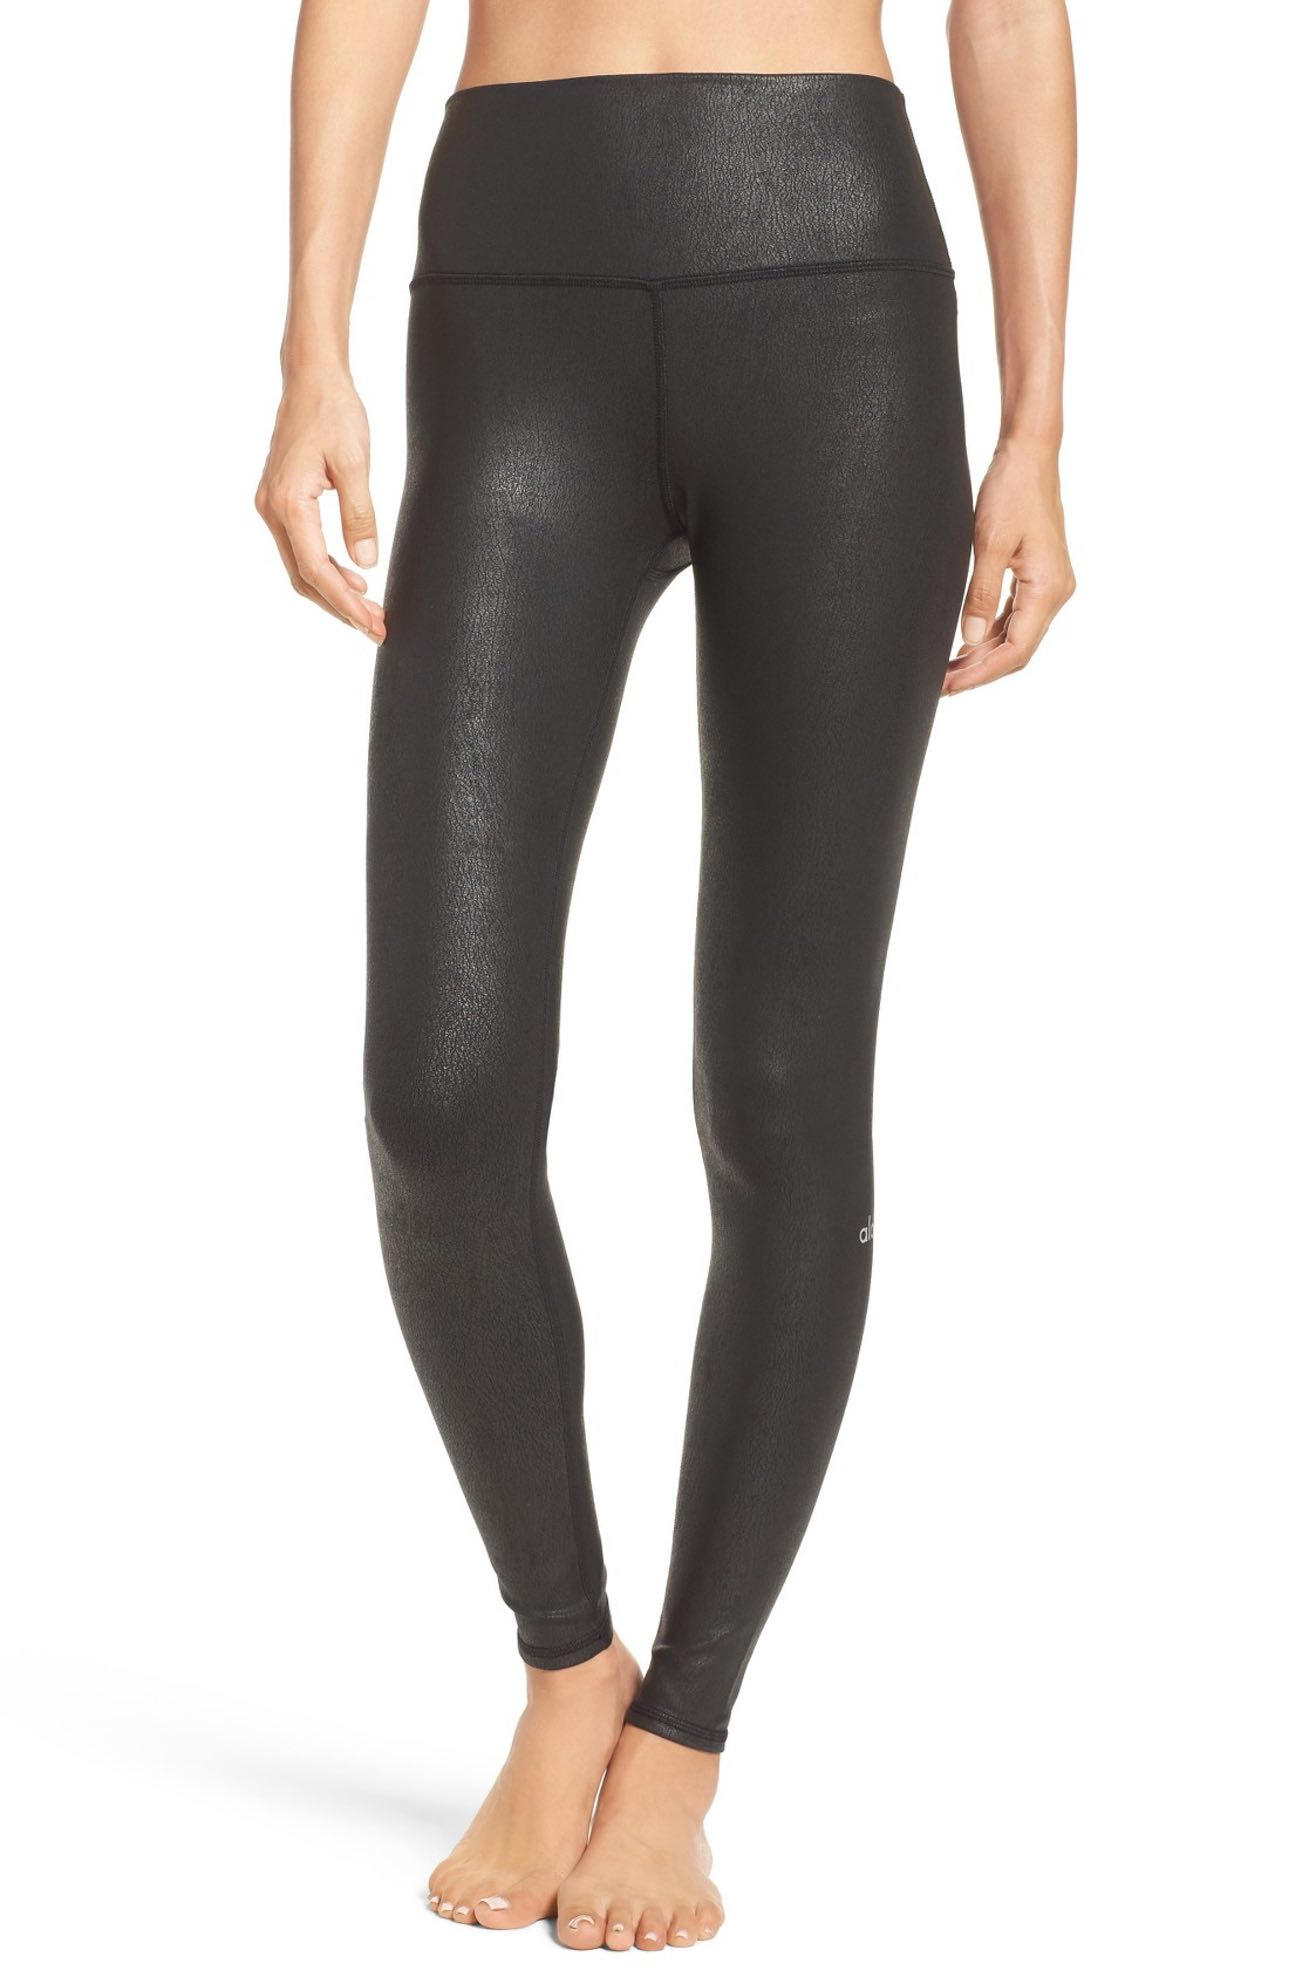 These Airbrush High Waist Leggings, $82, are a perfect example of workout pants that can transition into everyday pants.  Wear to yoga then throw on a long tank and leather coat.  PERF. (Image: Nordstrom)